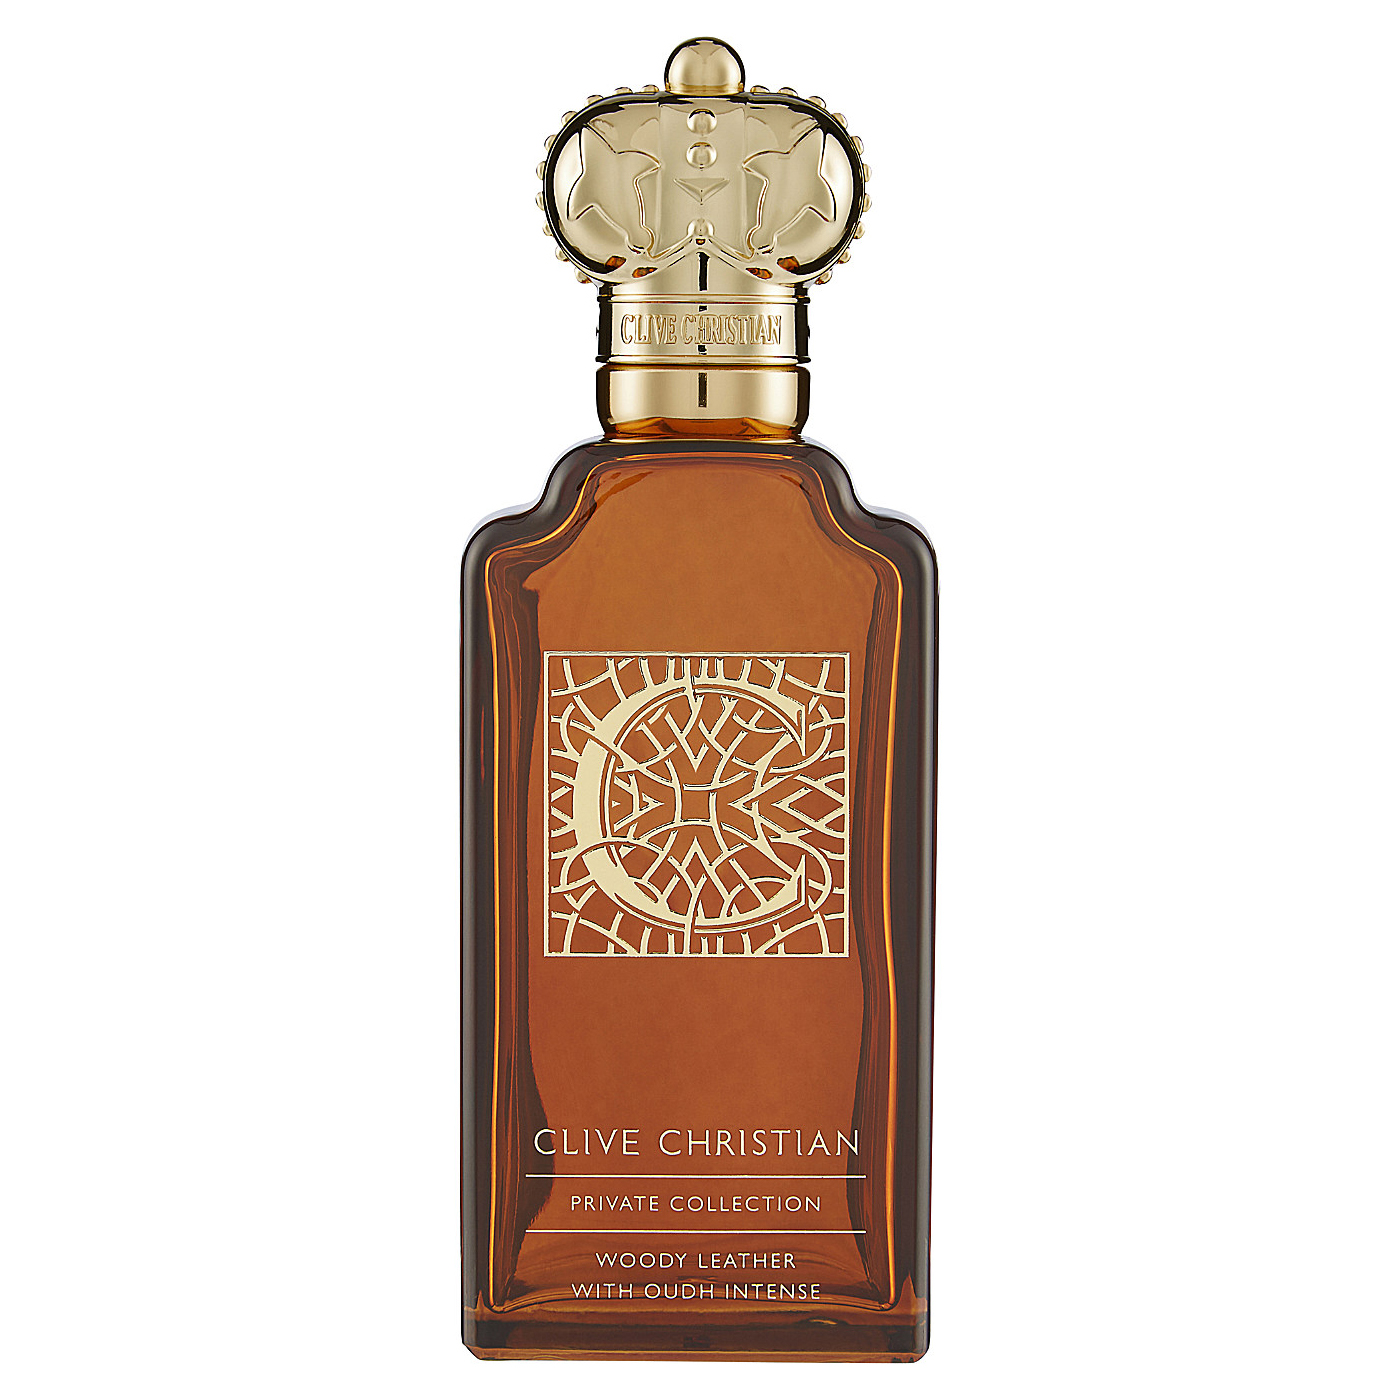 CLIVE CHRISTIAN C Woody Leather Masculine EDP 100 ml